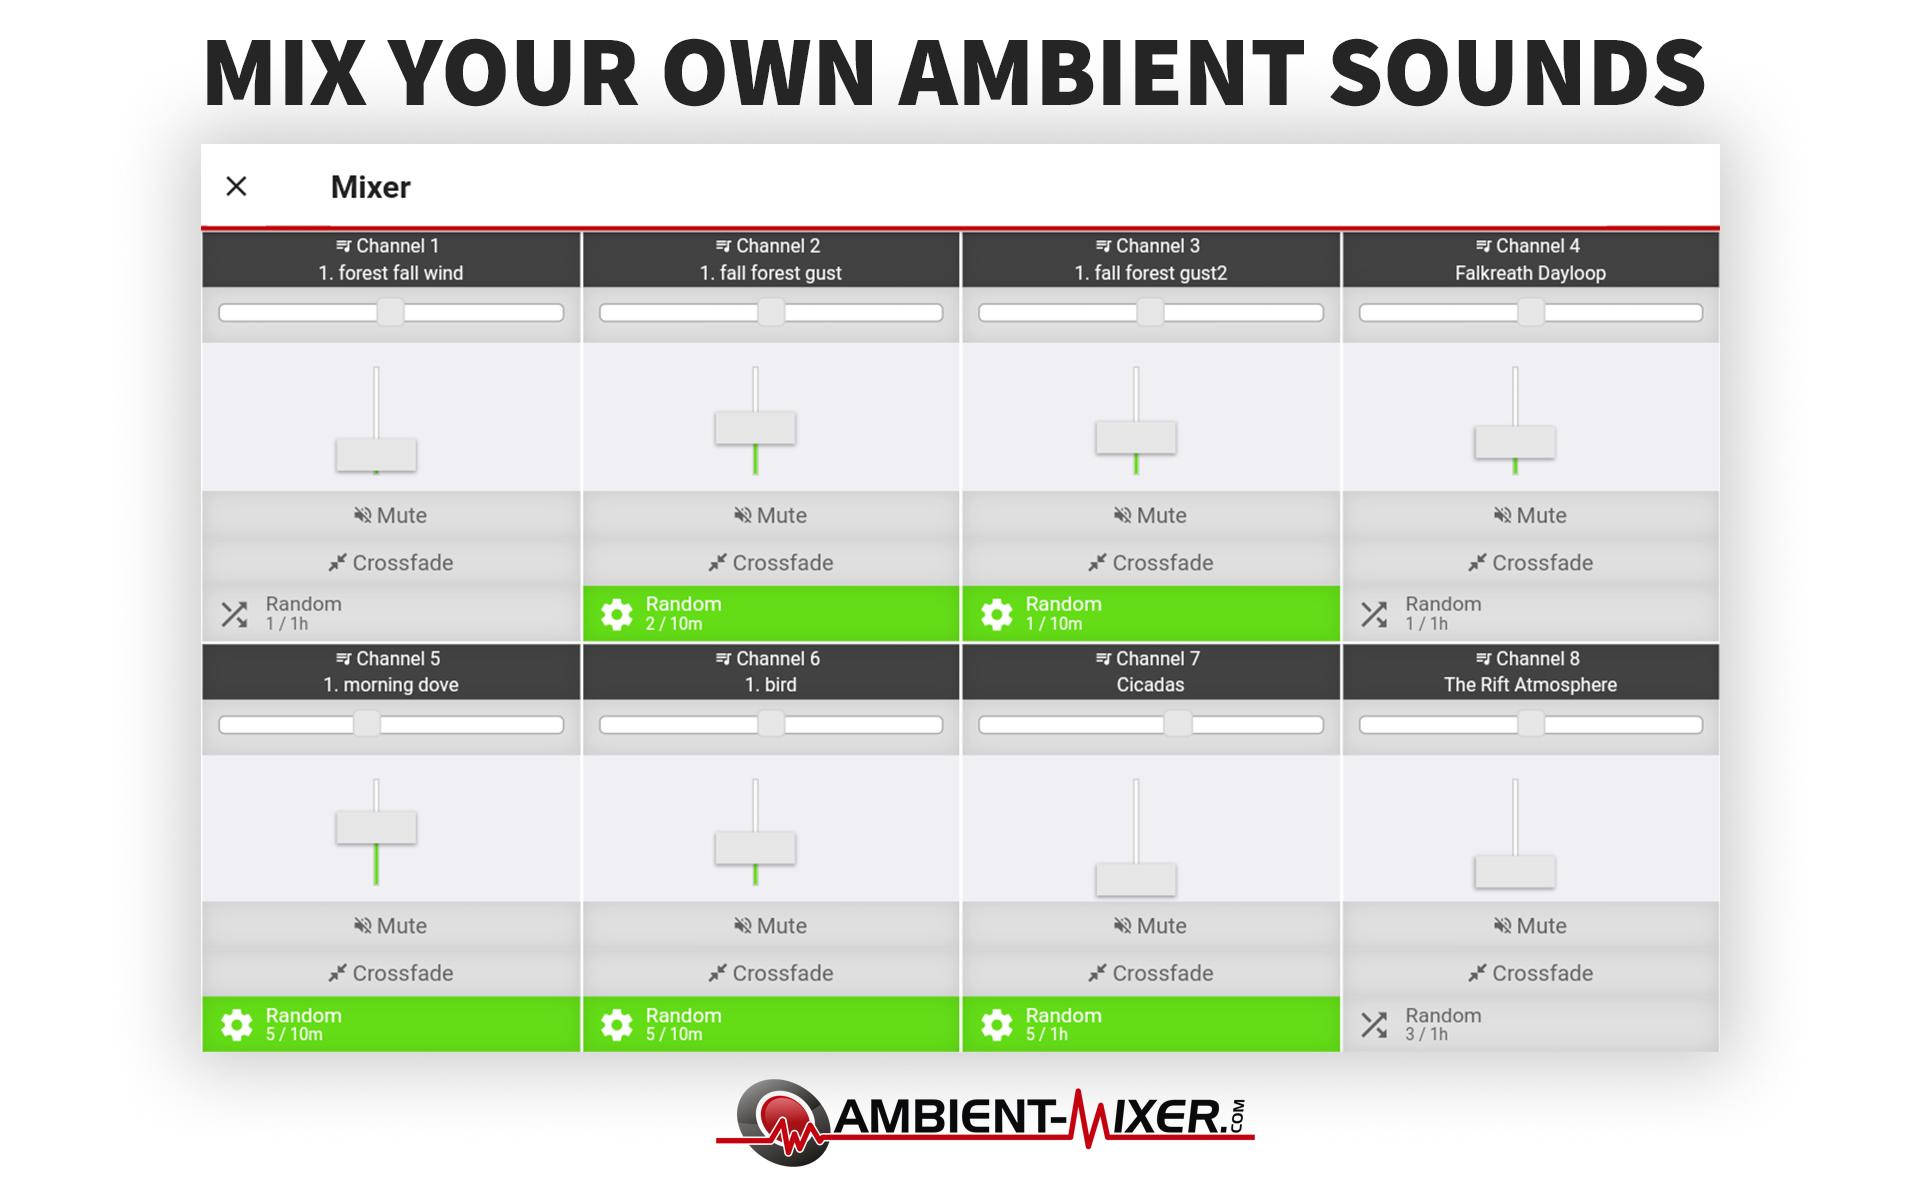 Ambient Mixer ambient mixer for android - apk download